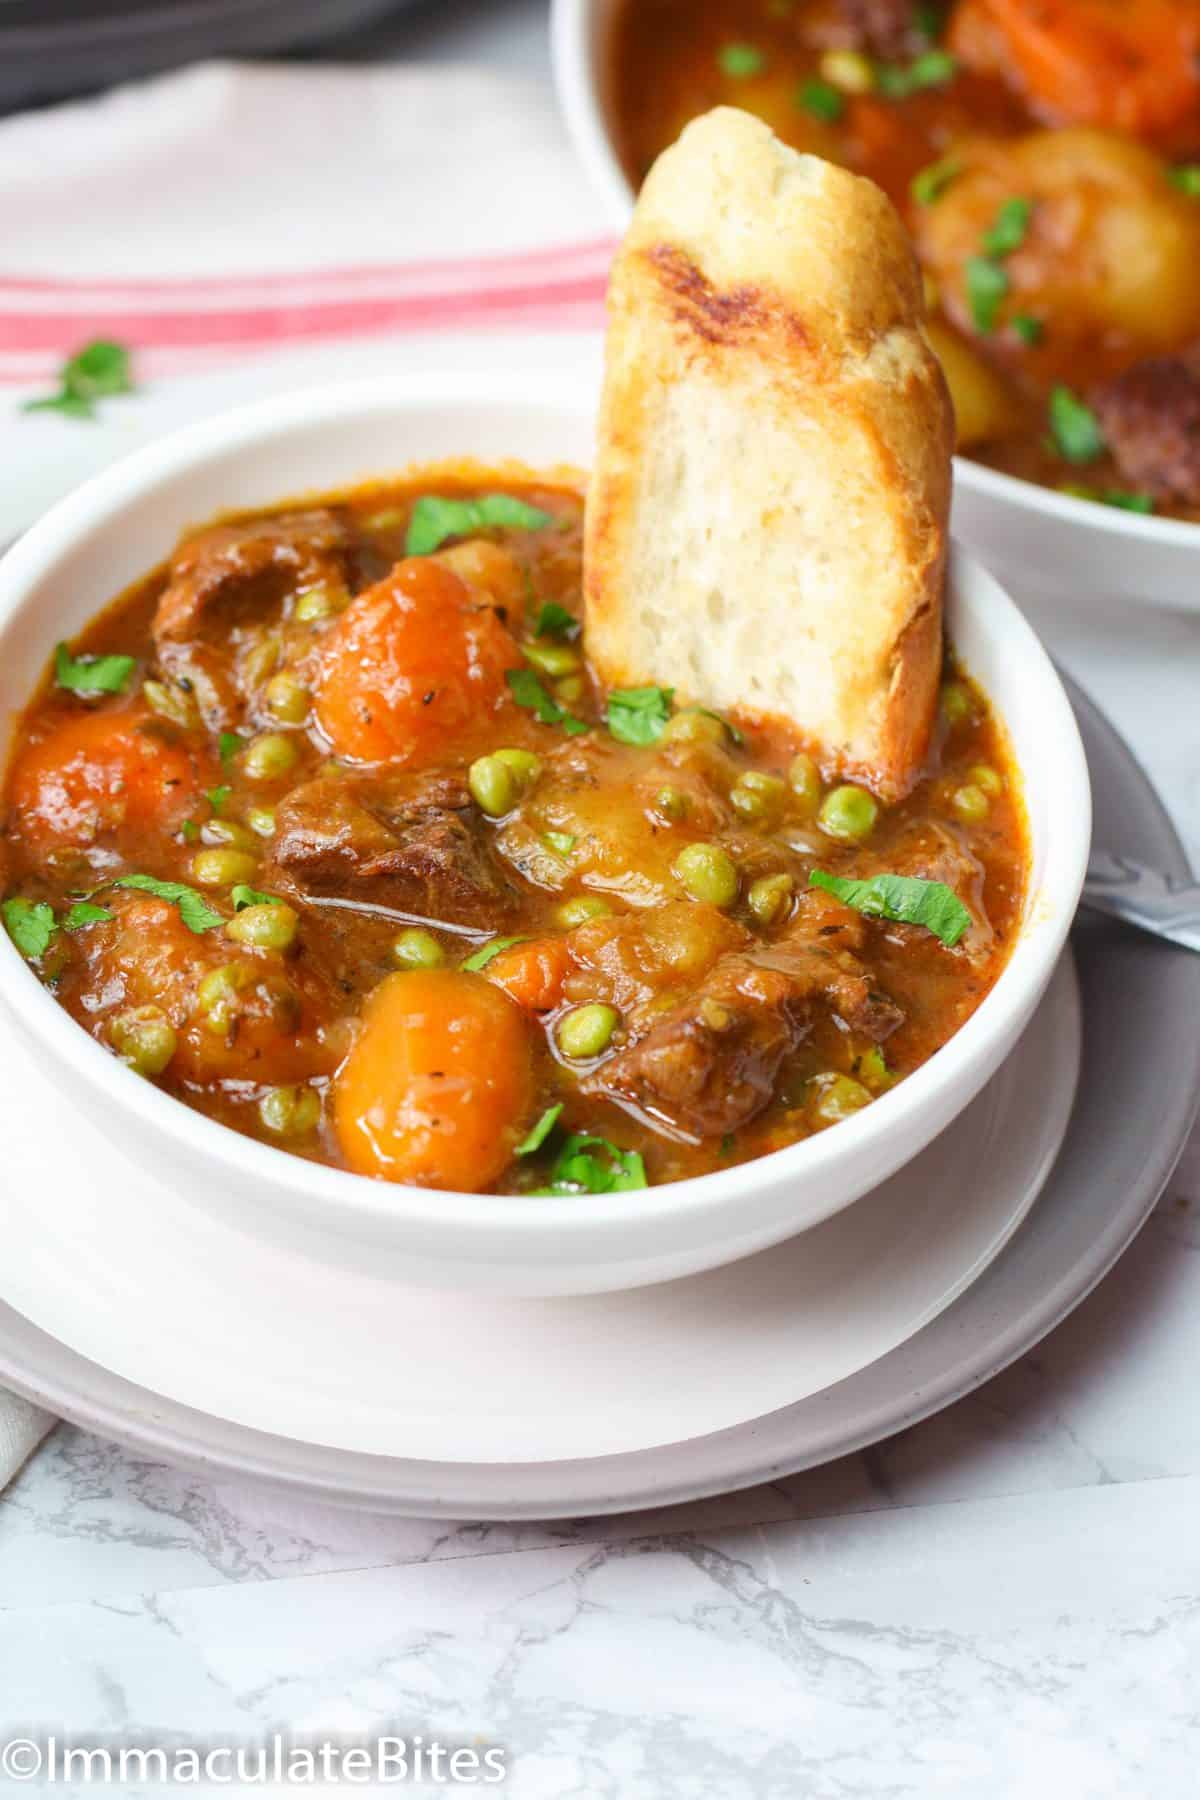 A Bowl of Instant Pot Beef Stew with Bread